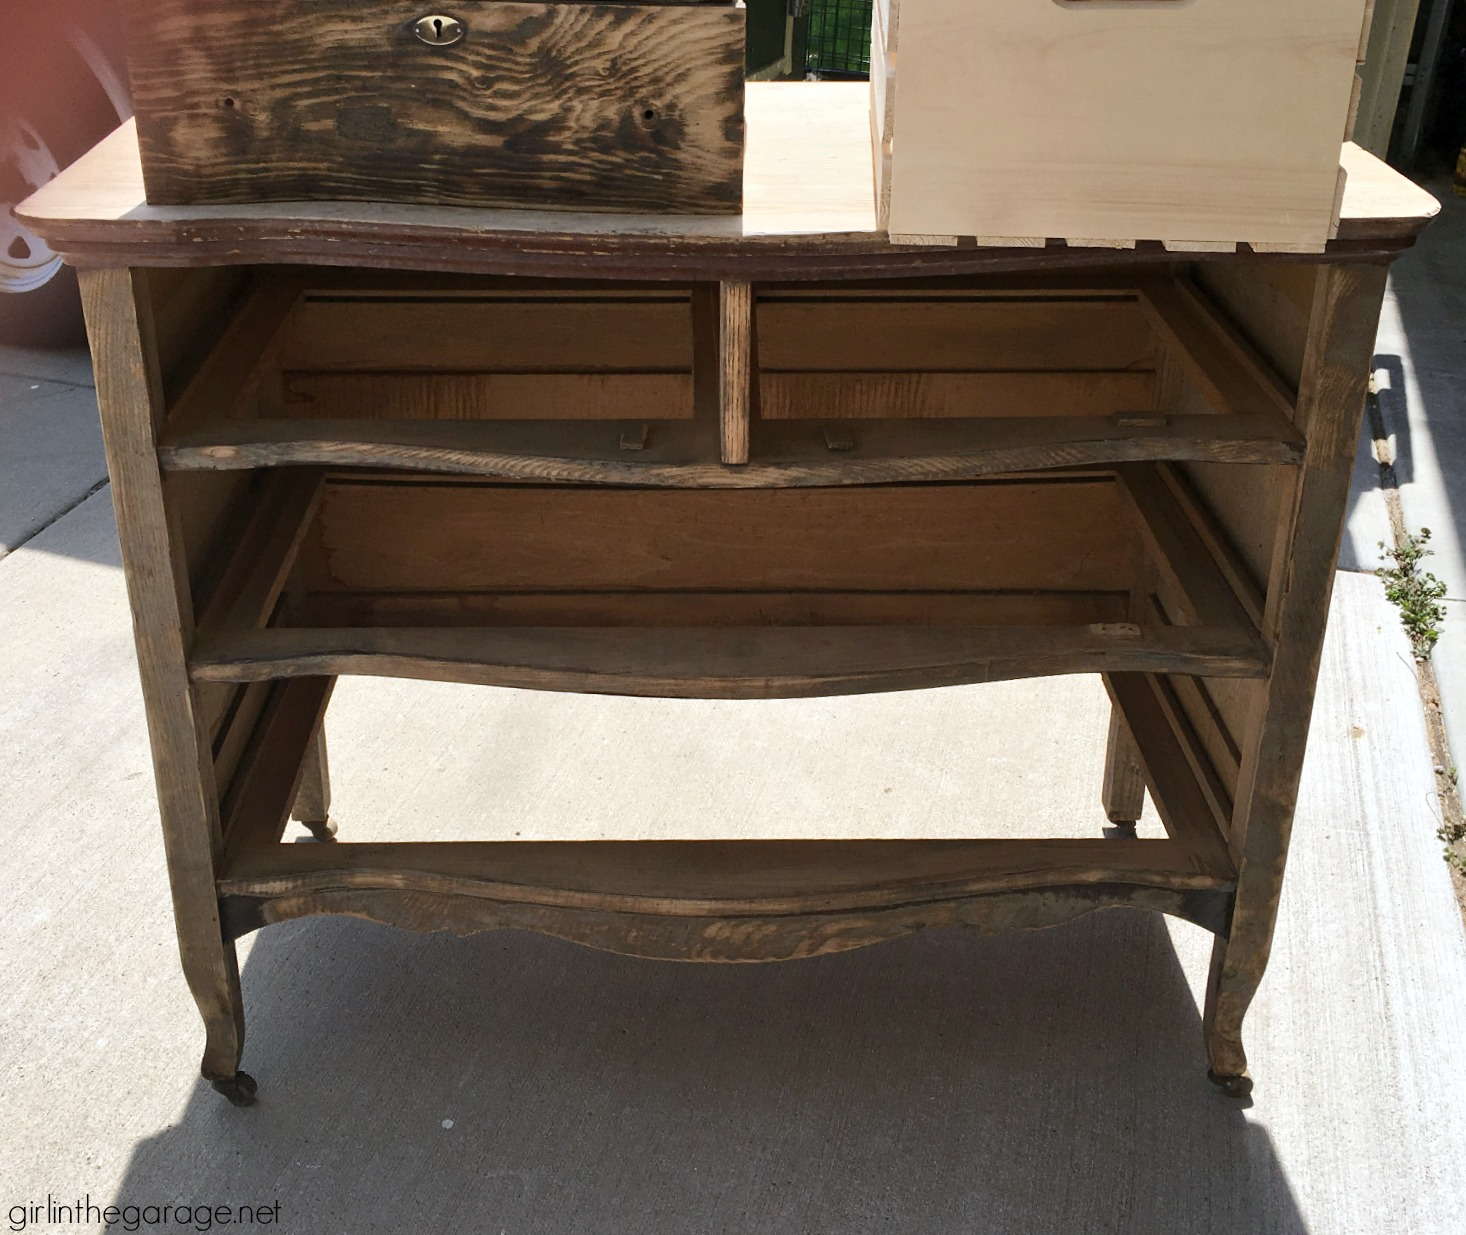 Antique serpentine dresser makeover - DIY tutorial with new stain and Annie Sloan Chalk Paint - Girl in the Garage